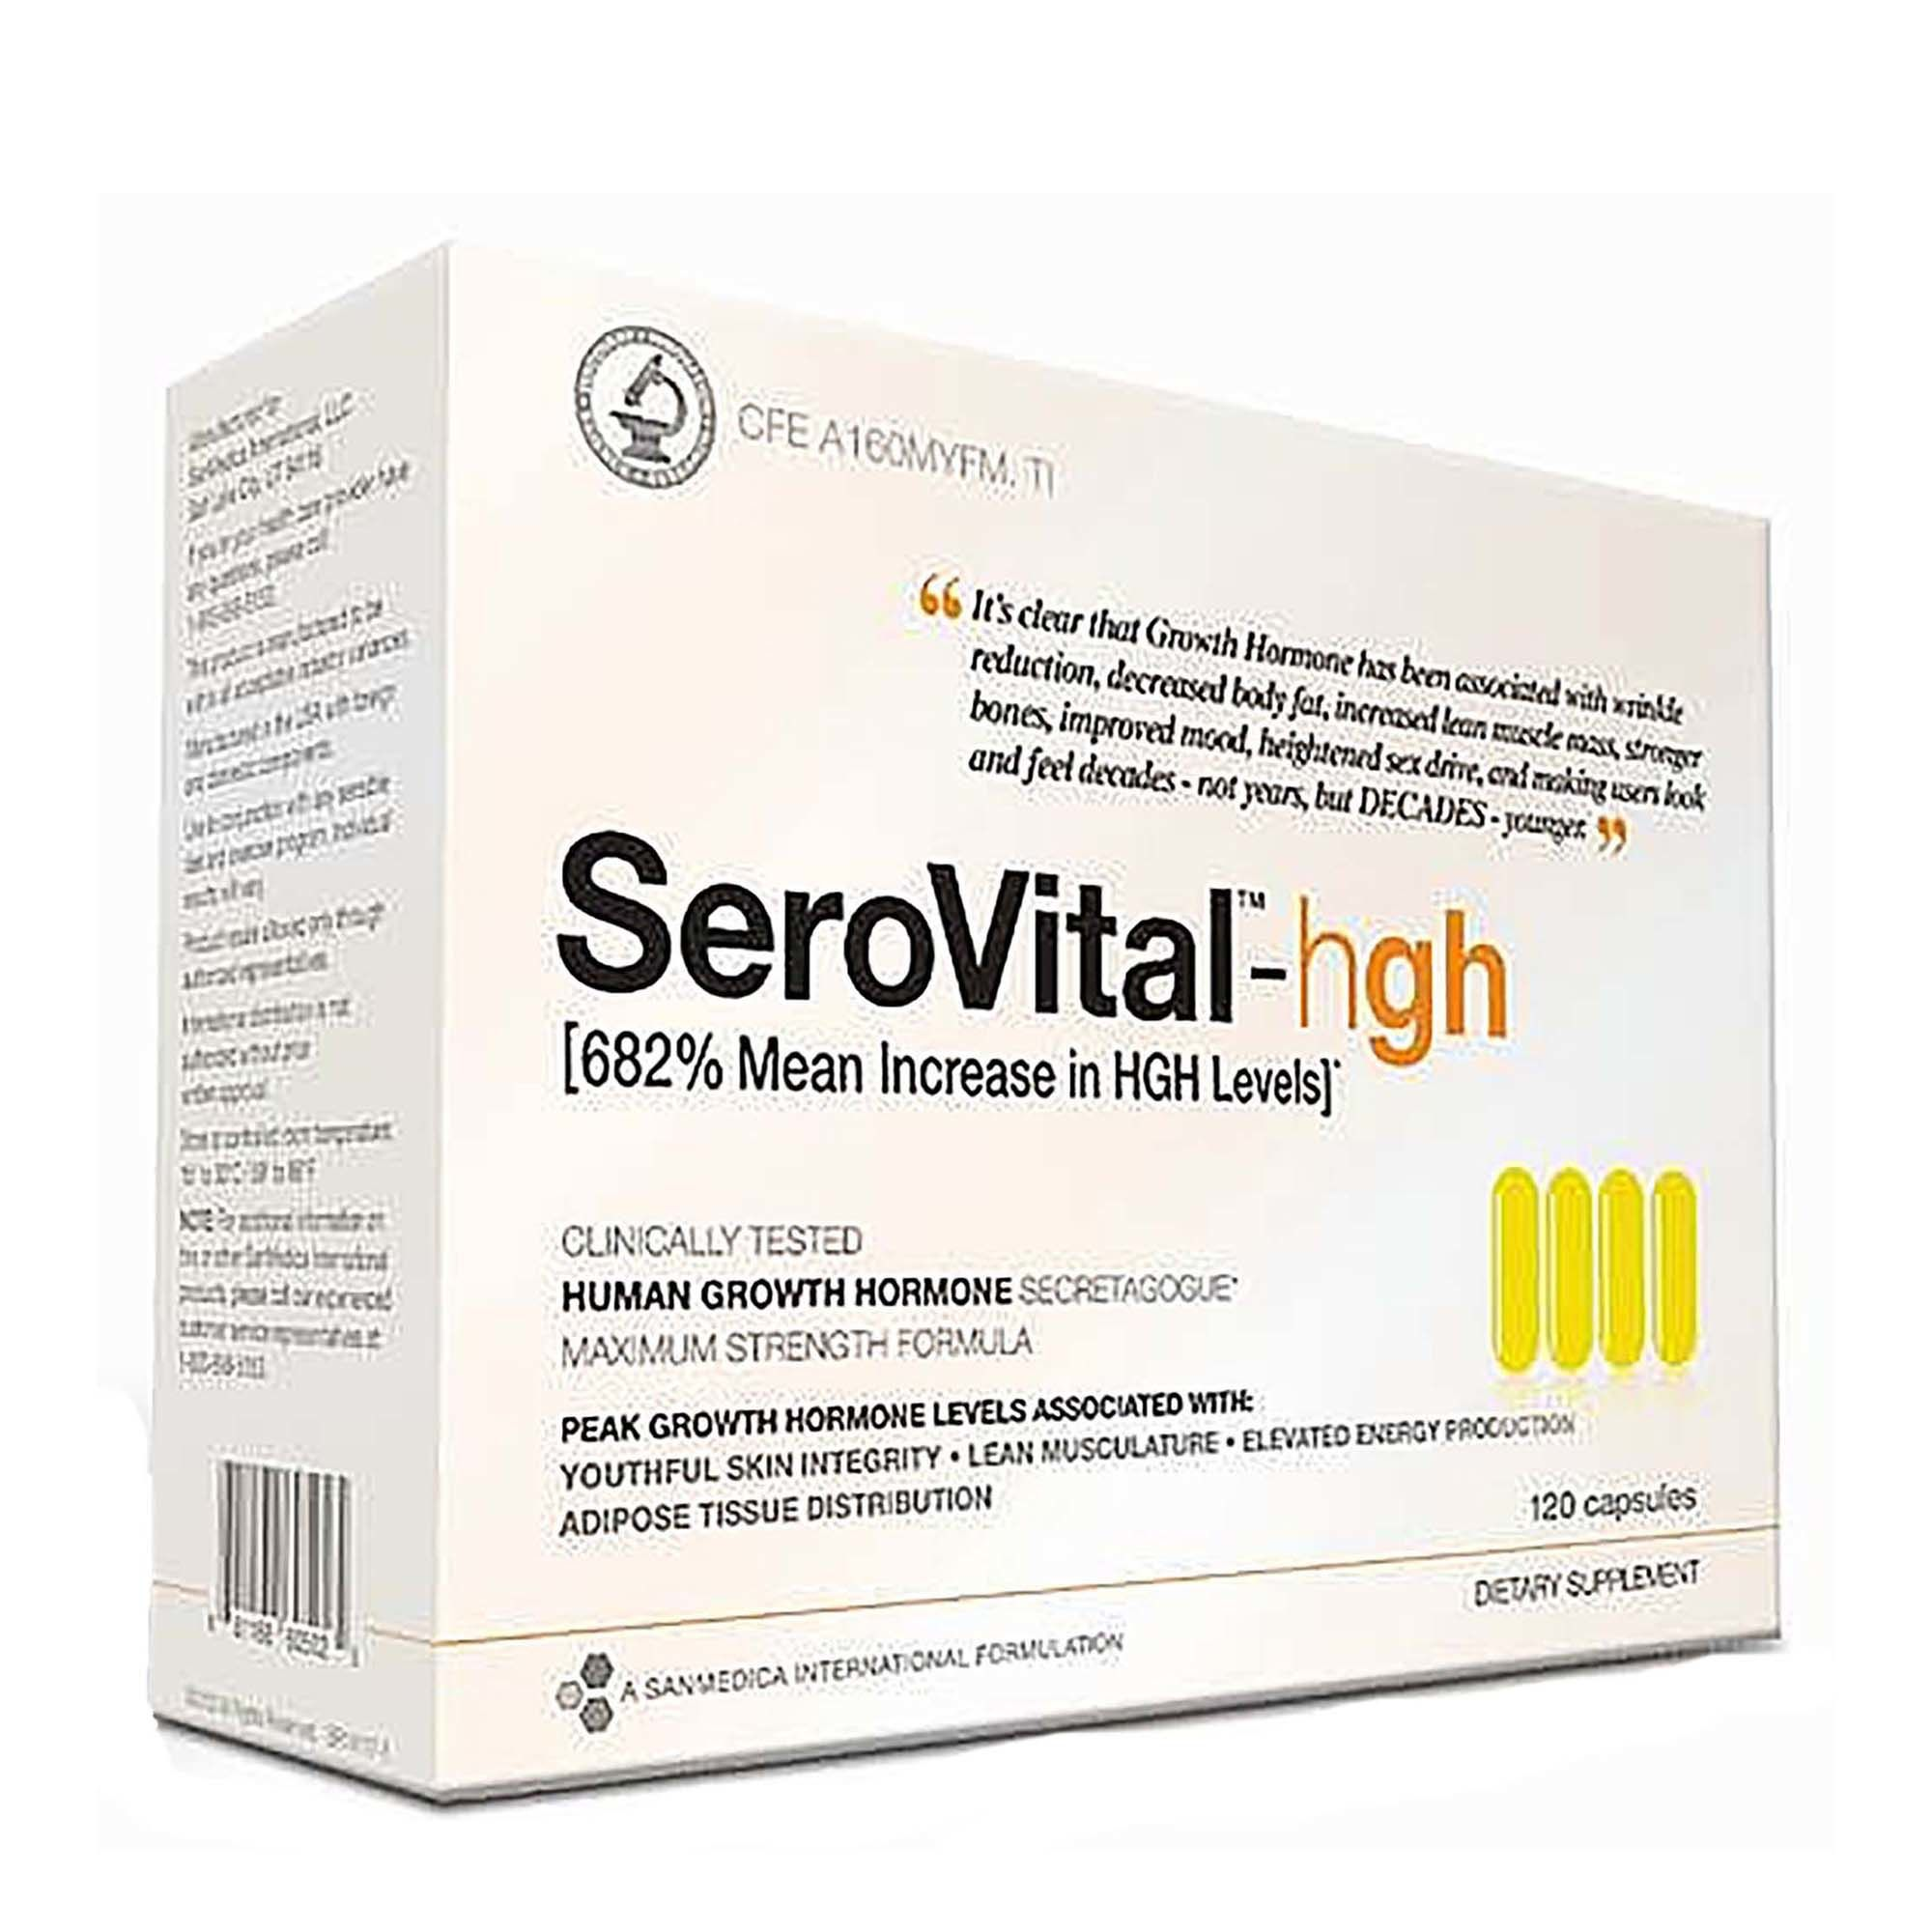 Serovital review: Is it the best amino acids based hgh